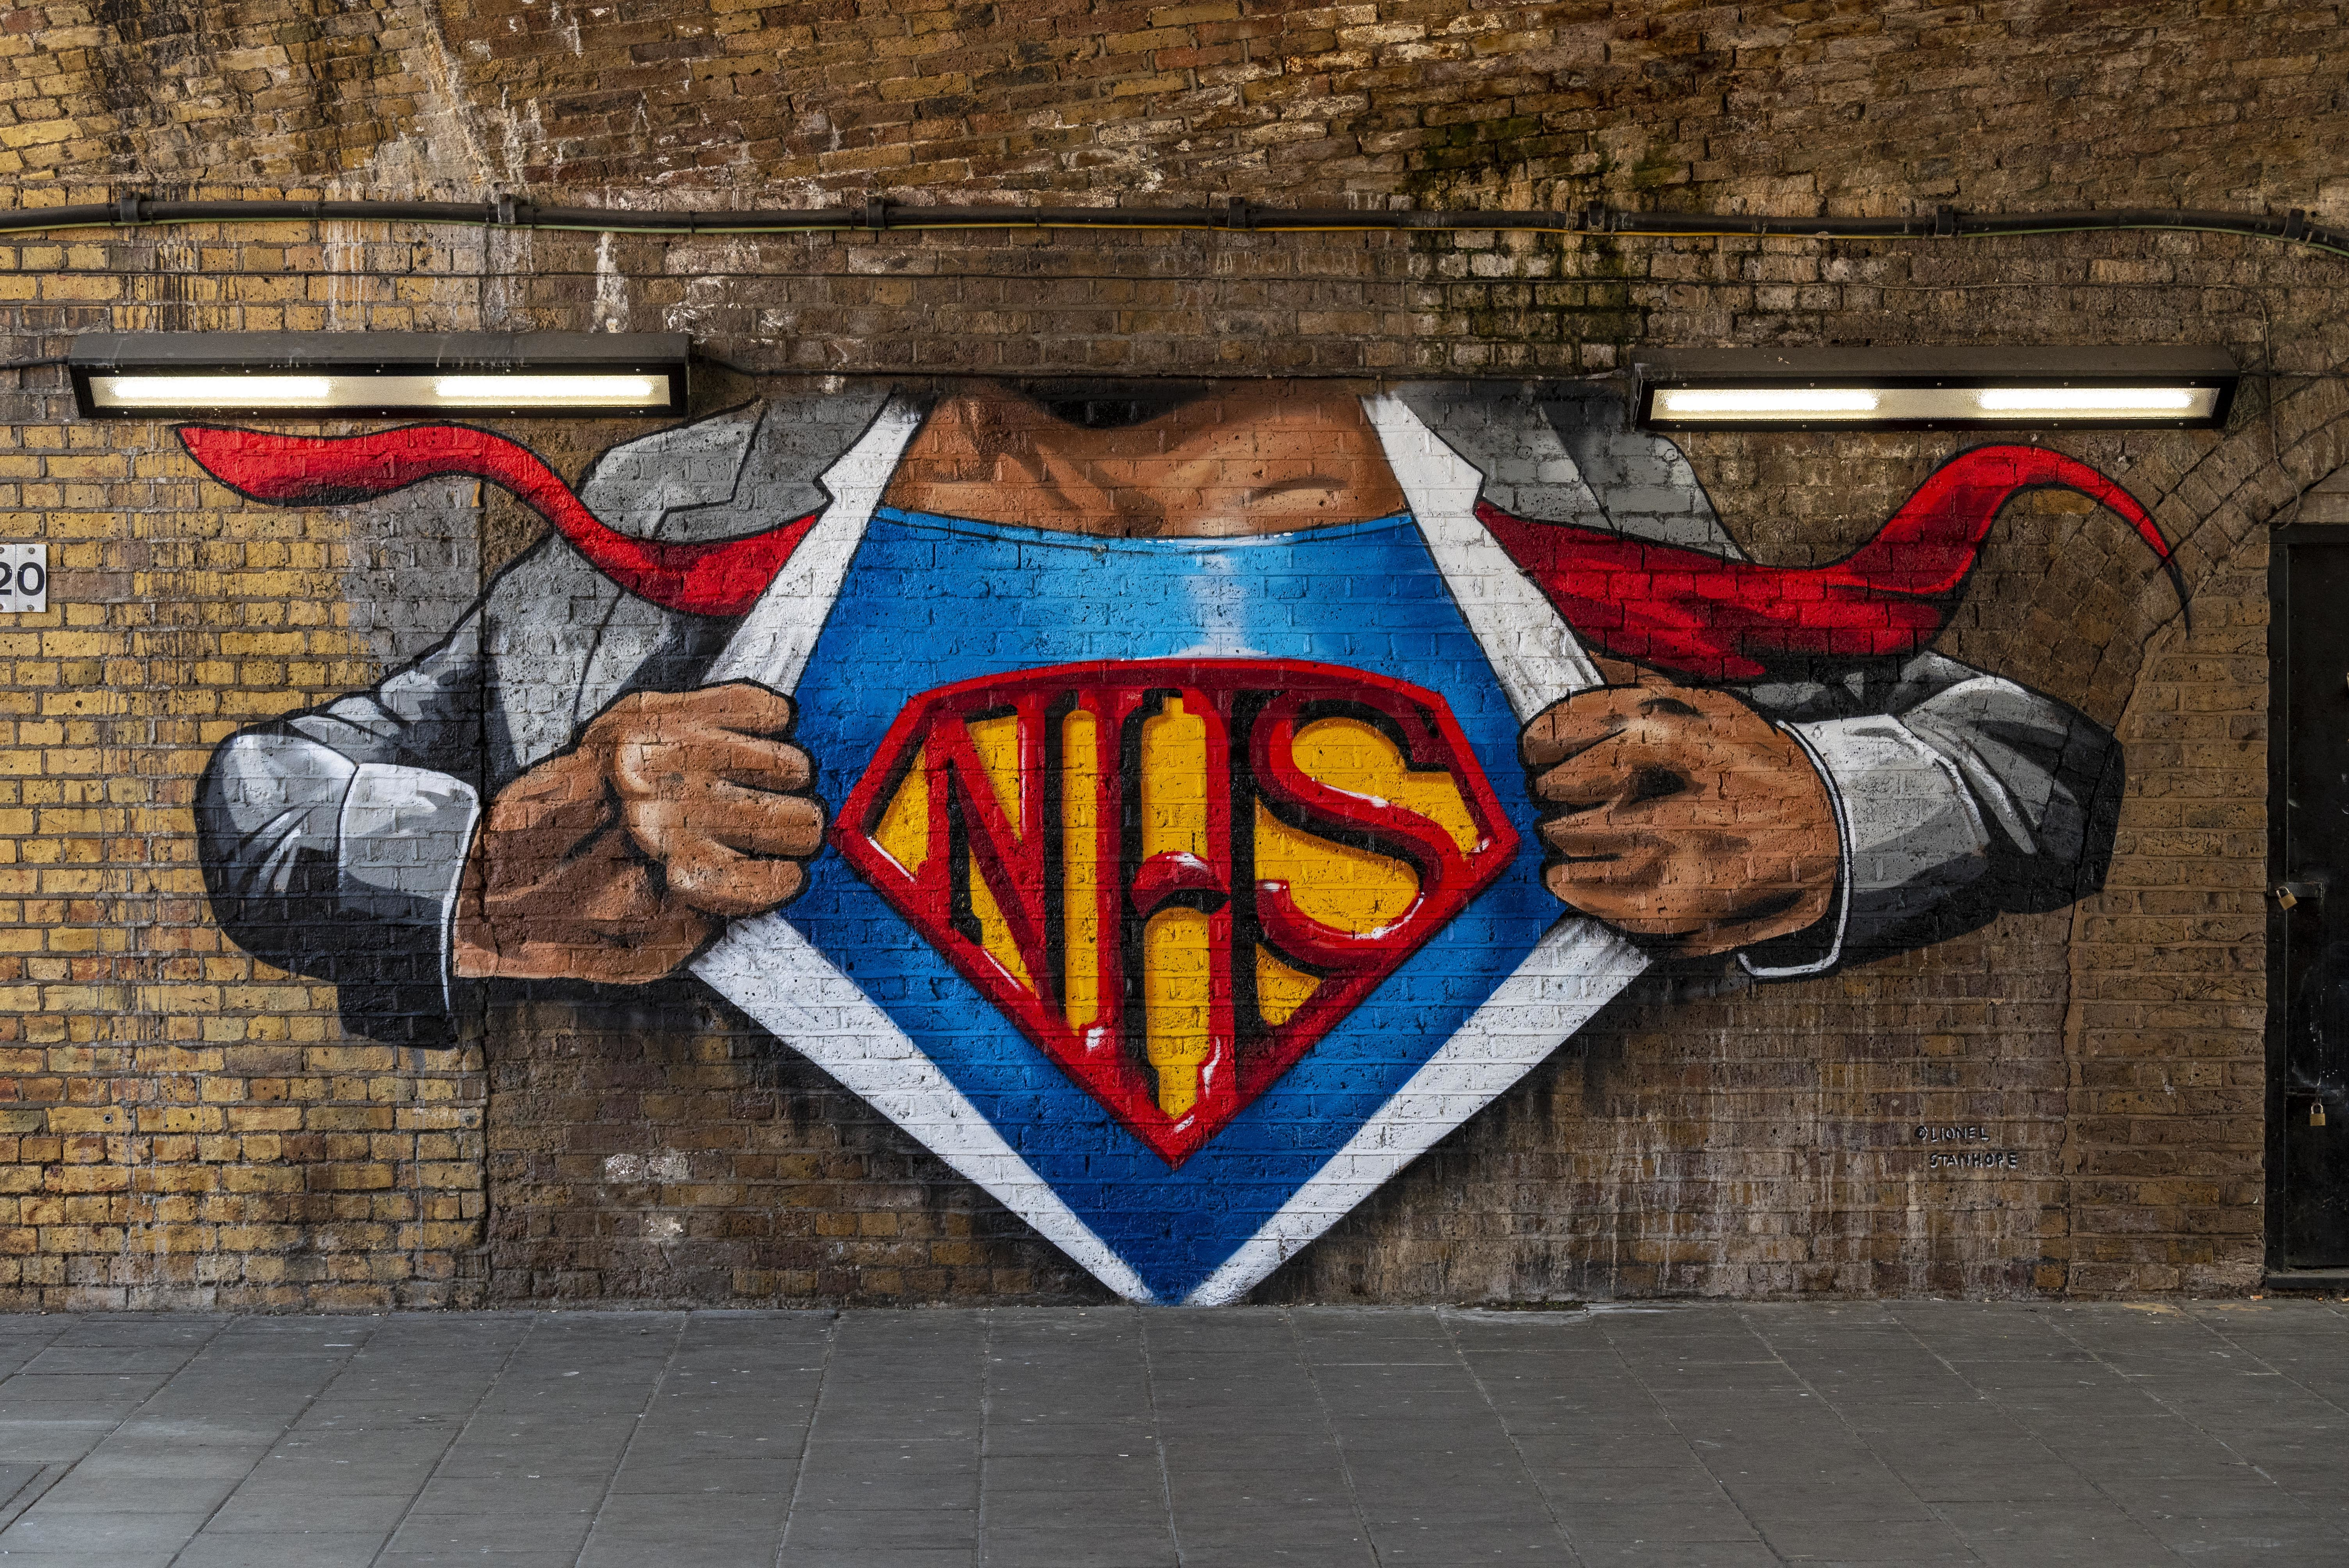 Brockley Street artist, Lionel Stanhope's reworked mural on Cornwall Road under Waterloo East station in London paying tribute to our health service heroes (NHS). (Photo by Dave Rushen / SOPA Images/Sipa USA)